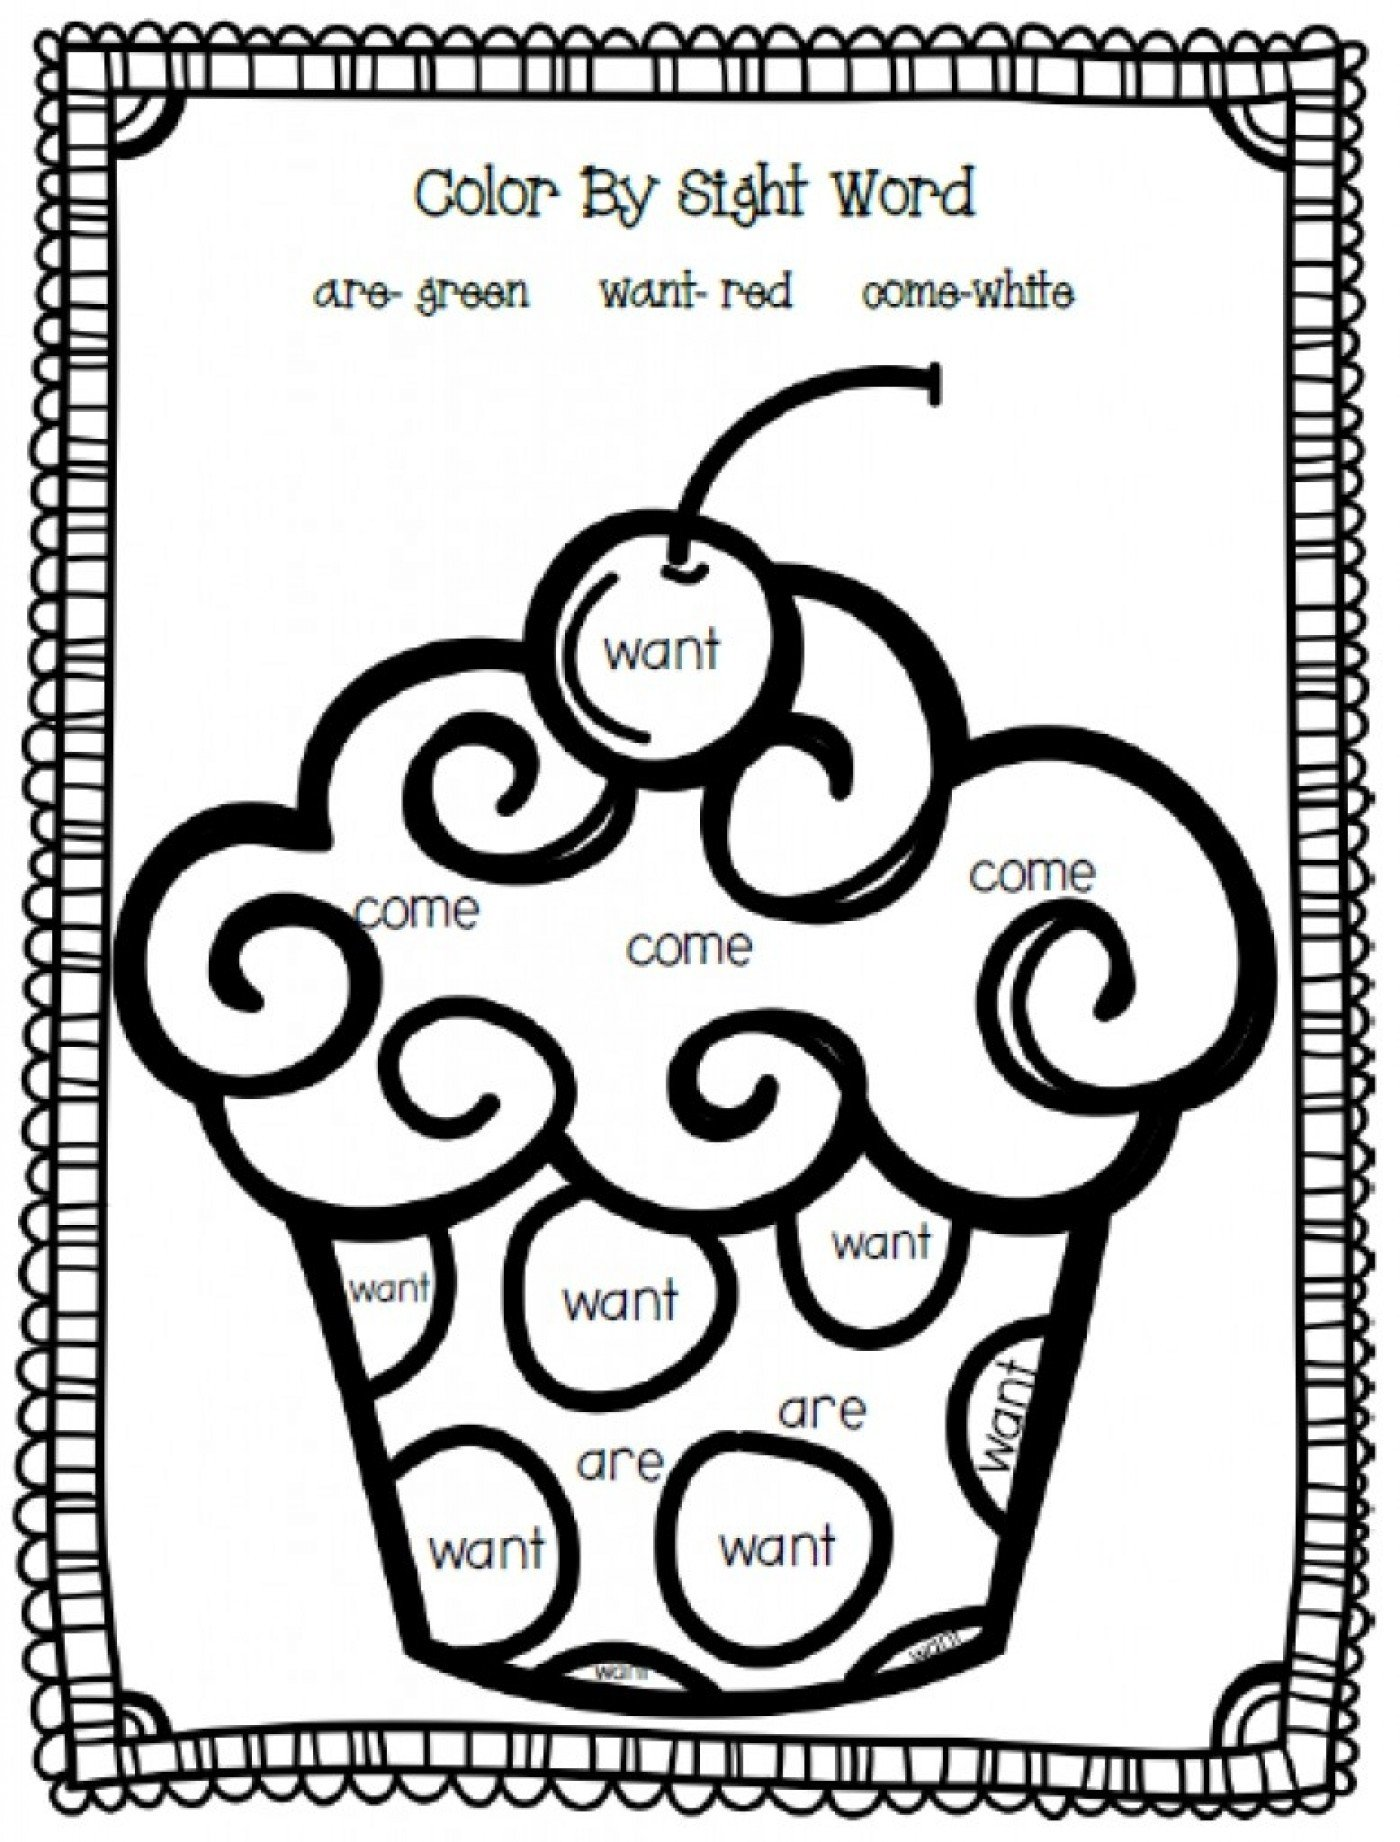 Color Word Worksheets for Kindergarten Worksheets Math Worksheet Kindergarten Worksheets